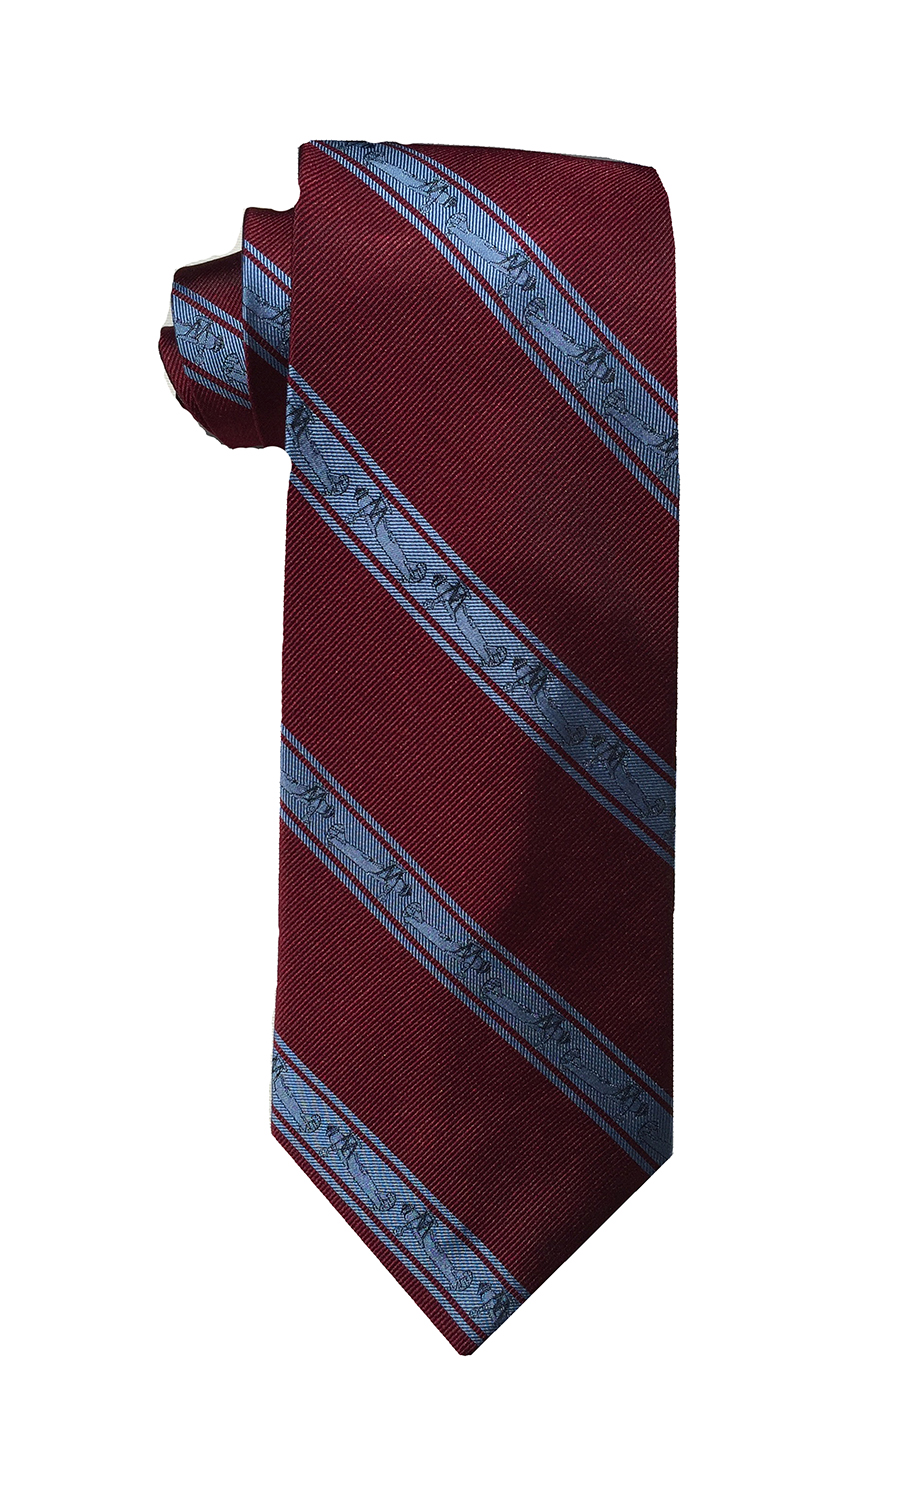 Curtiss Helldiver biplane tie in claret and sky blue